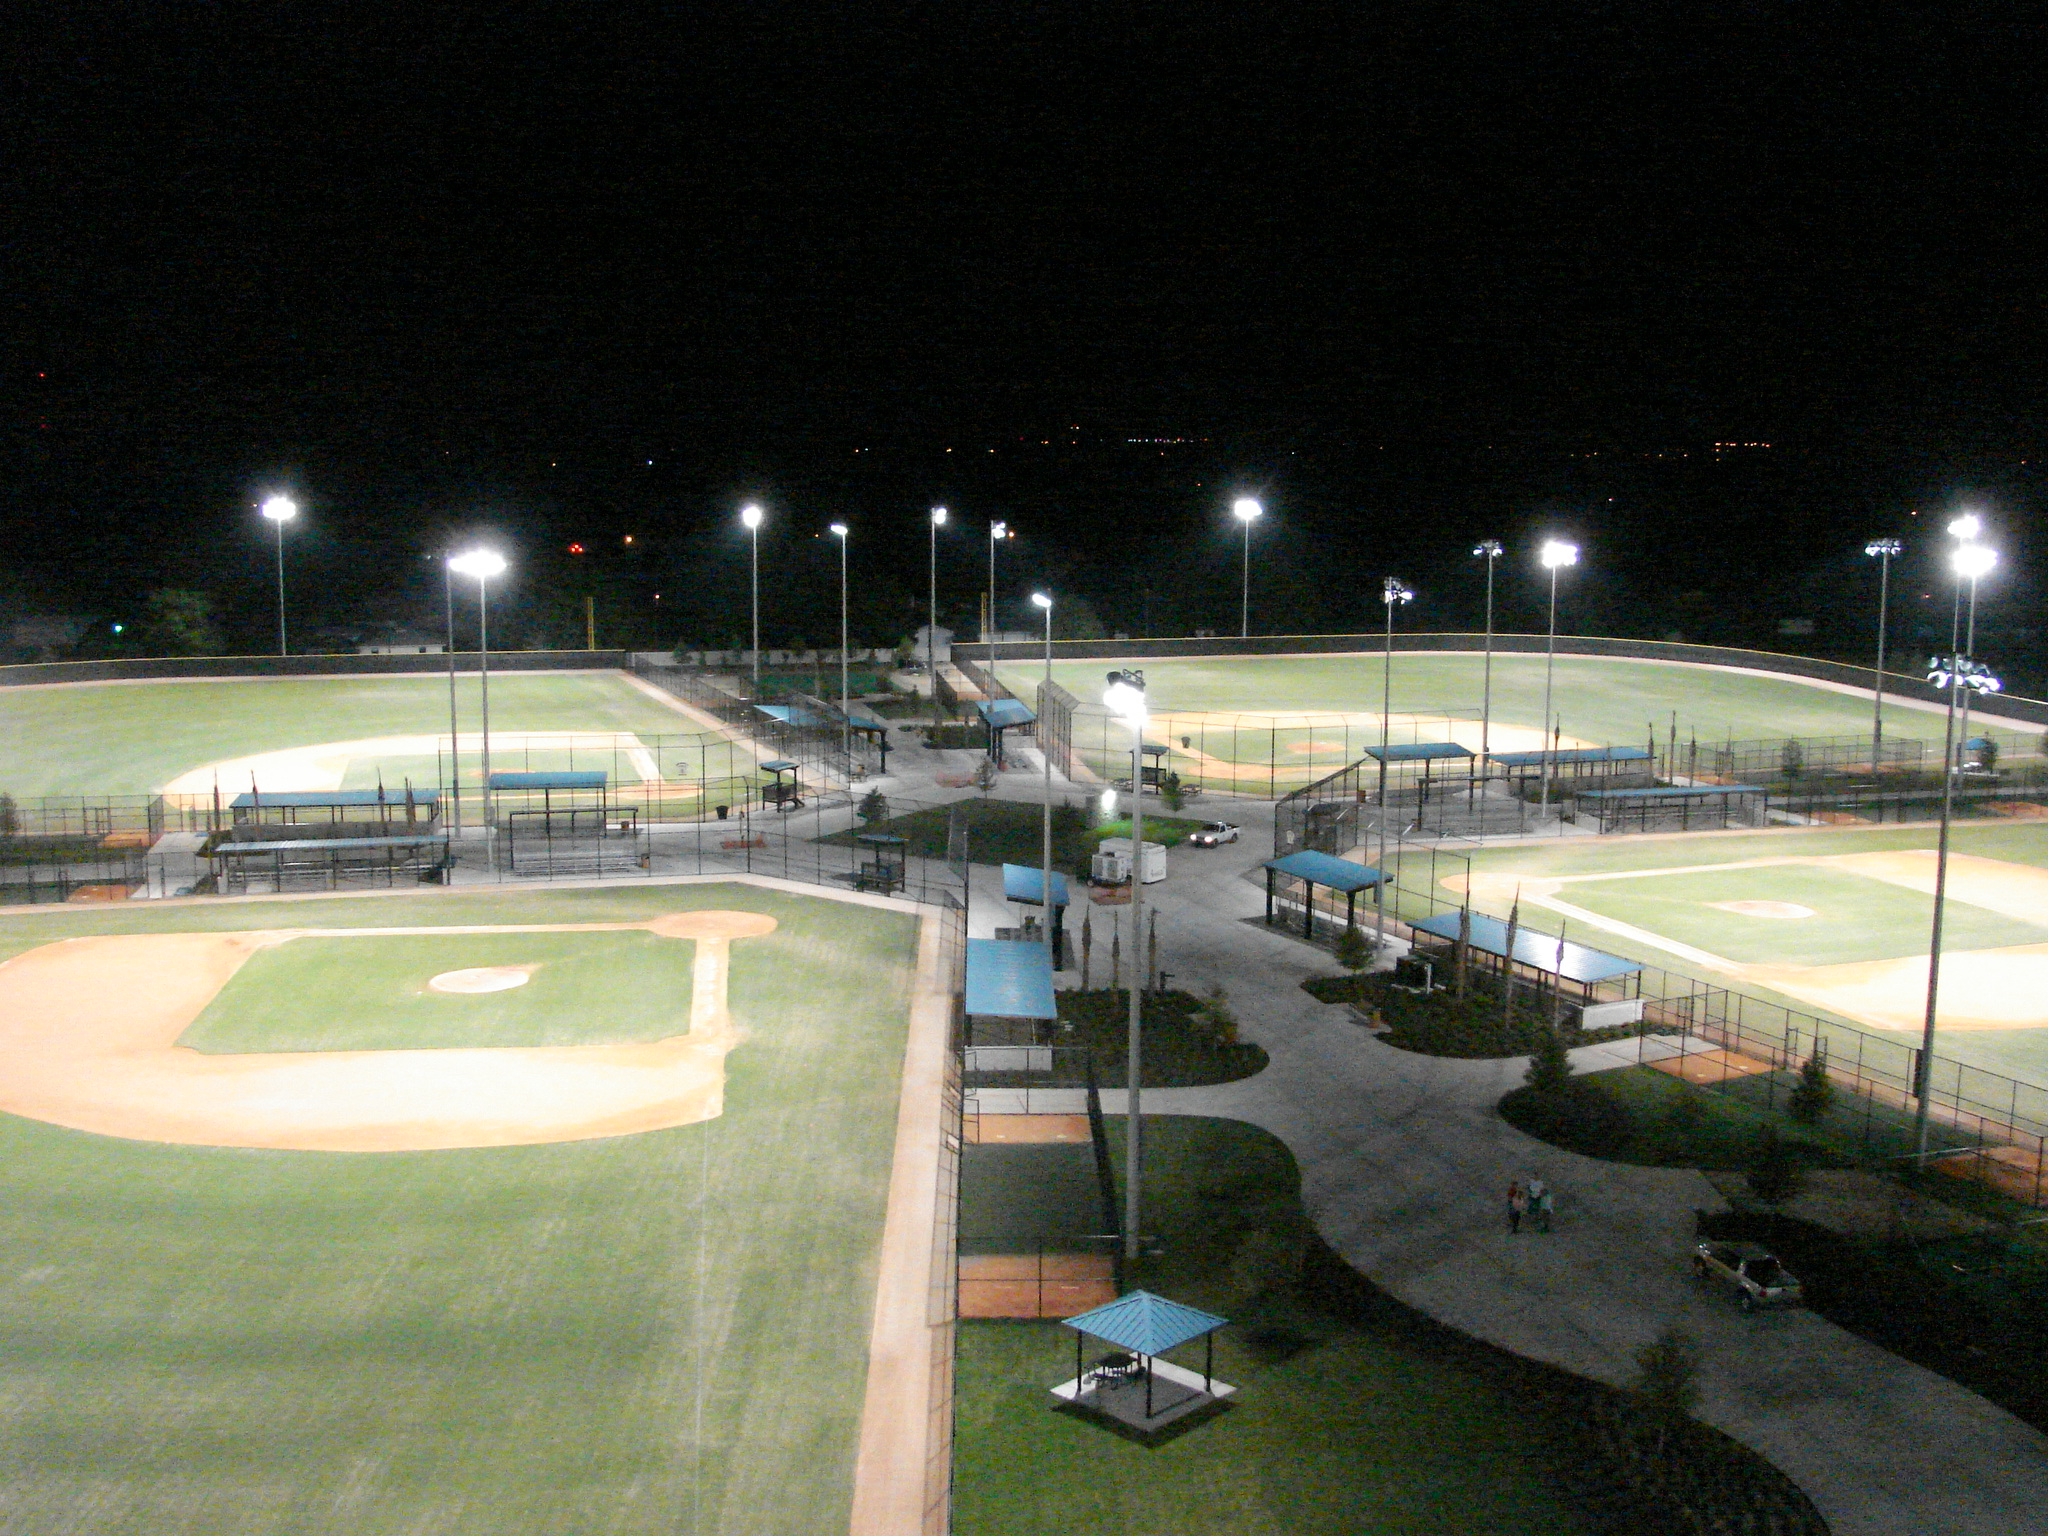 Baseball fields at the Lake Myrtle Sports Park